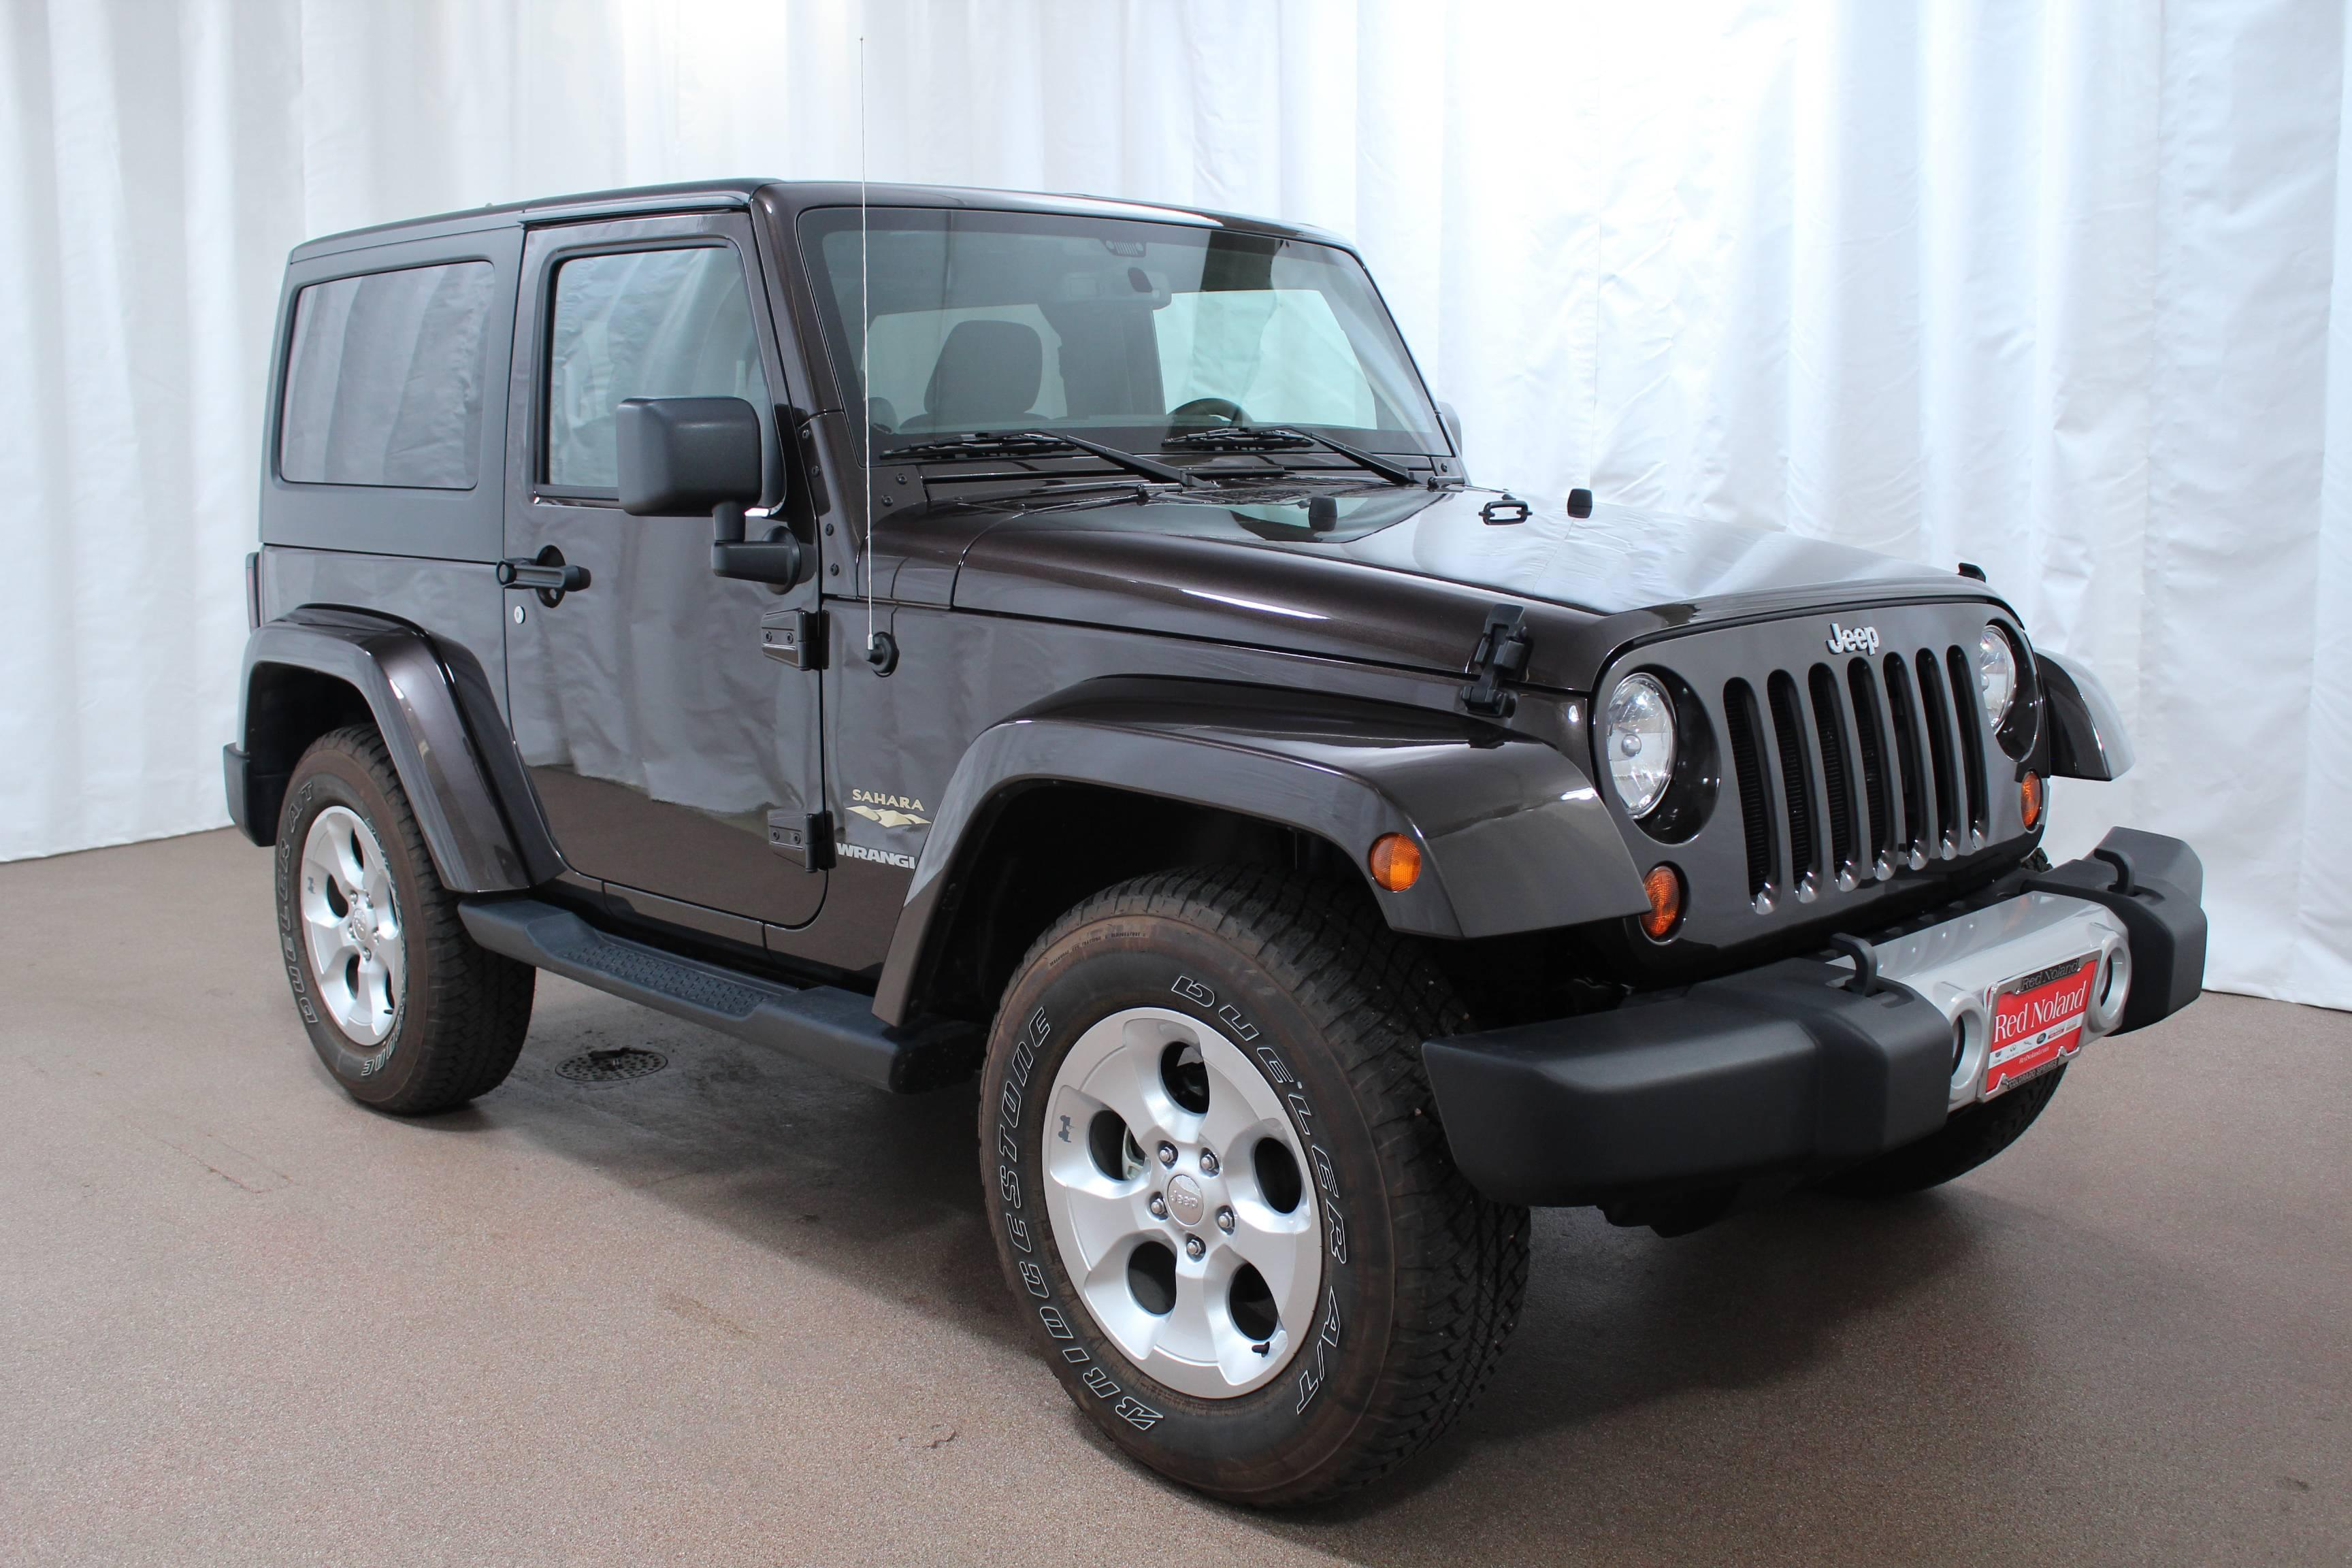 pre owned 2013 jeep wrangler sahara for sale red noland used. Black Bedroom Furniture Sets. Home Design Ideas